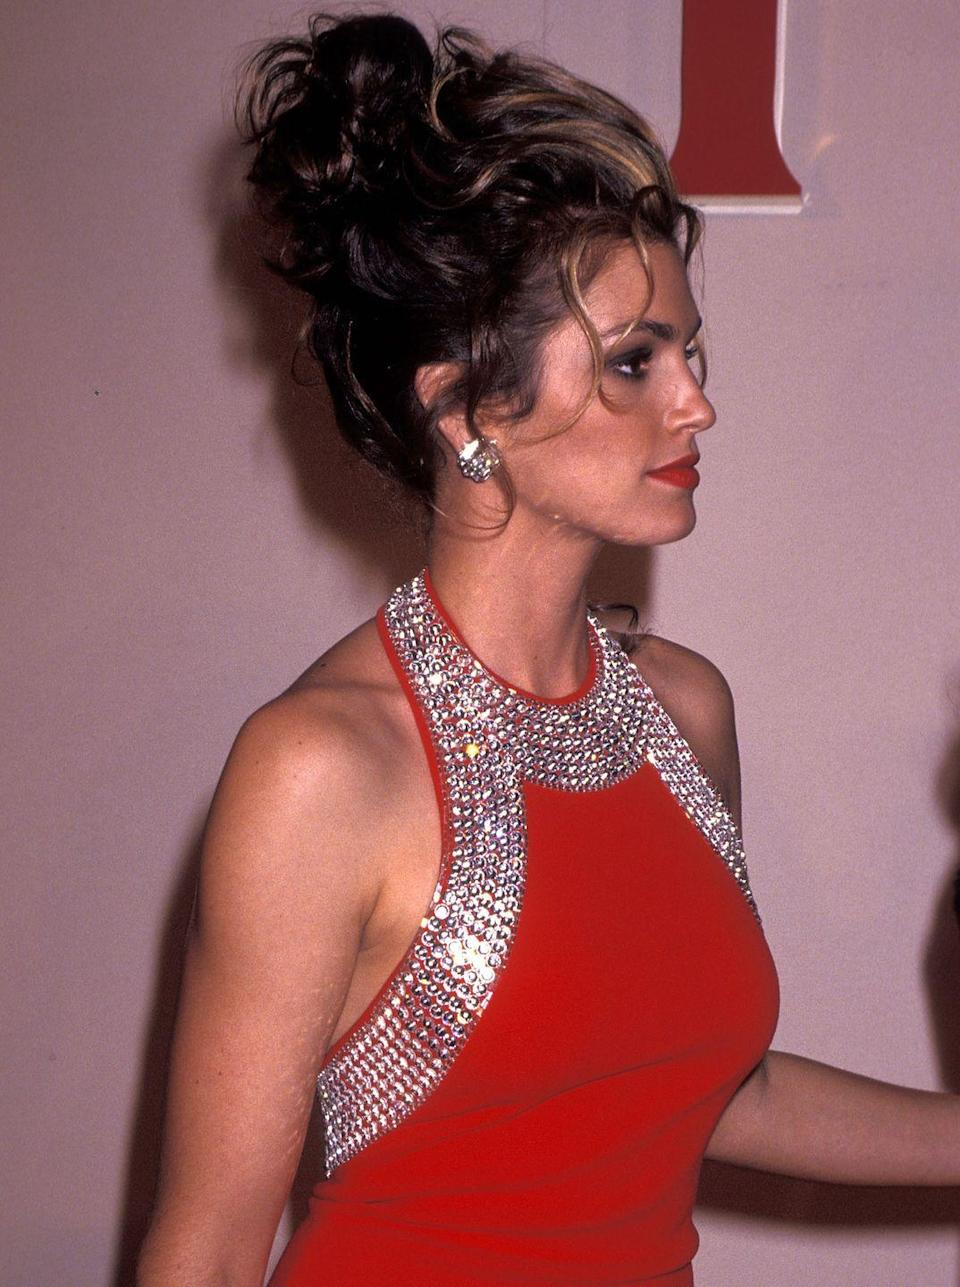 <p>Glam supermodels including Cindy Crawford popularized over-the-top updos with face-framing pieces.</p>